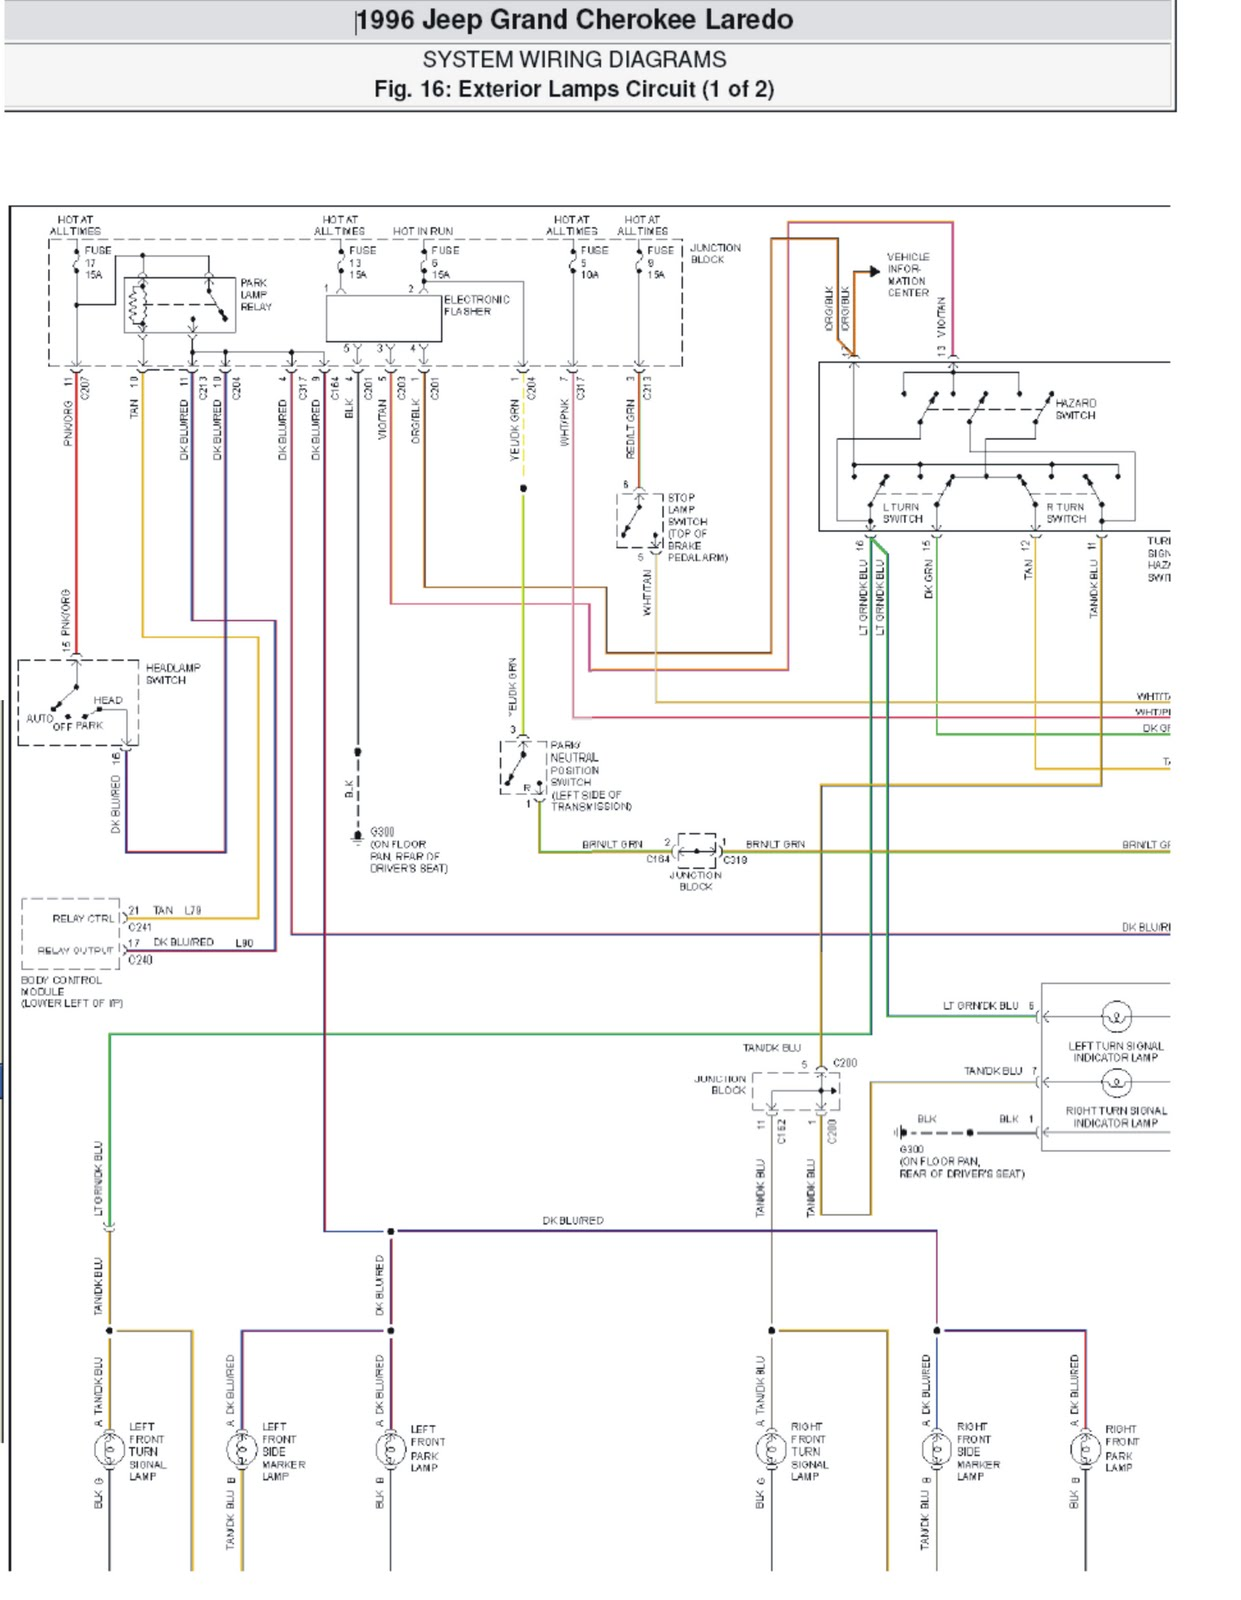 42086 wrangler wiring diagrams for 2013 | wiring library  wiring library